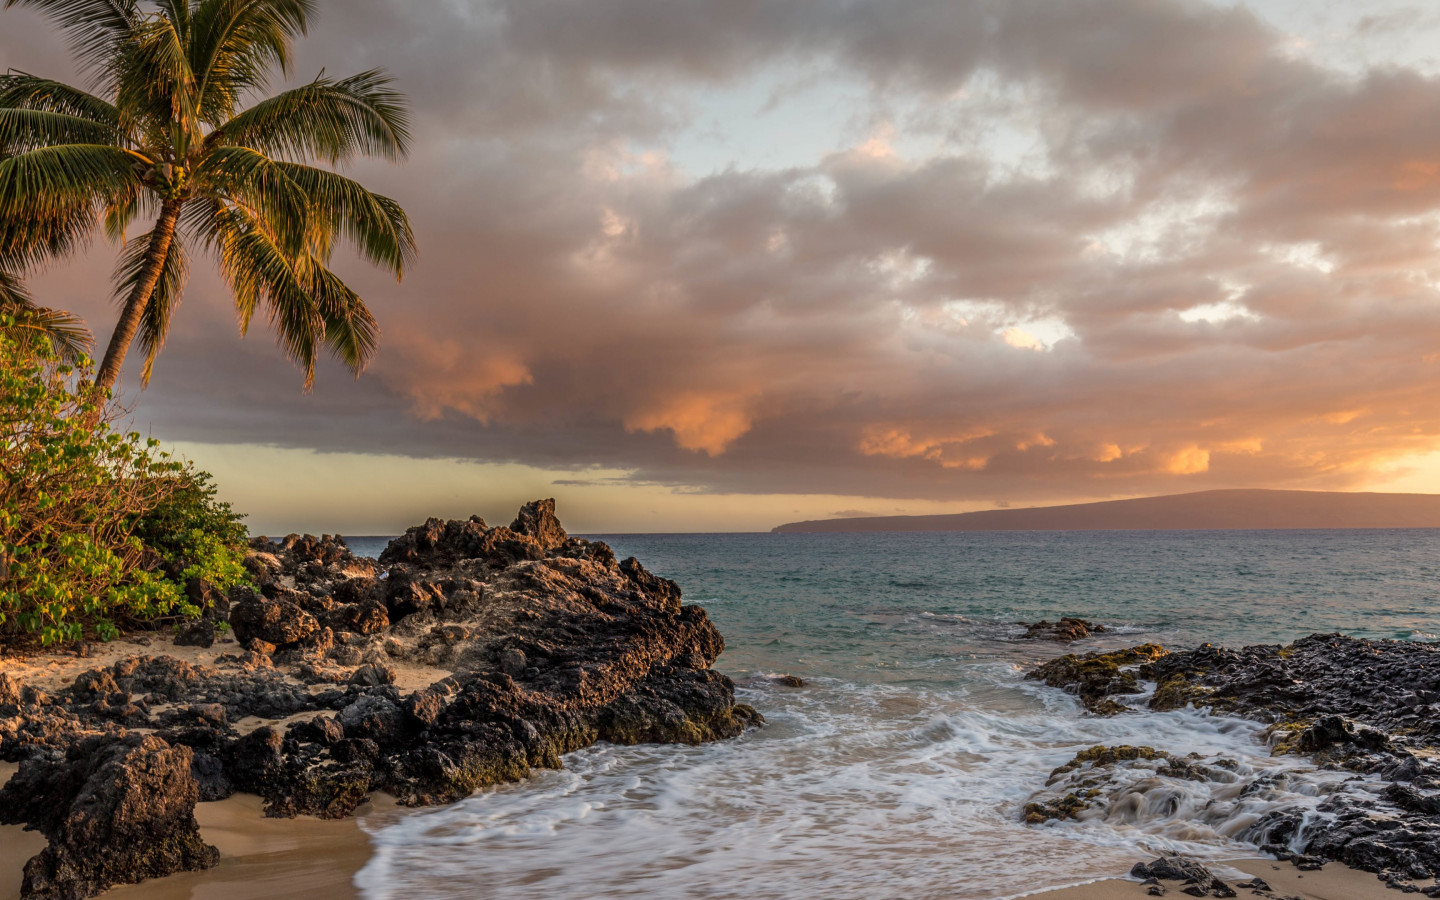 Kihei beach and palm trees wallpaper 1440x900